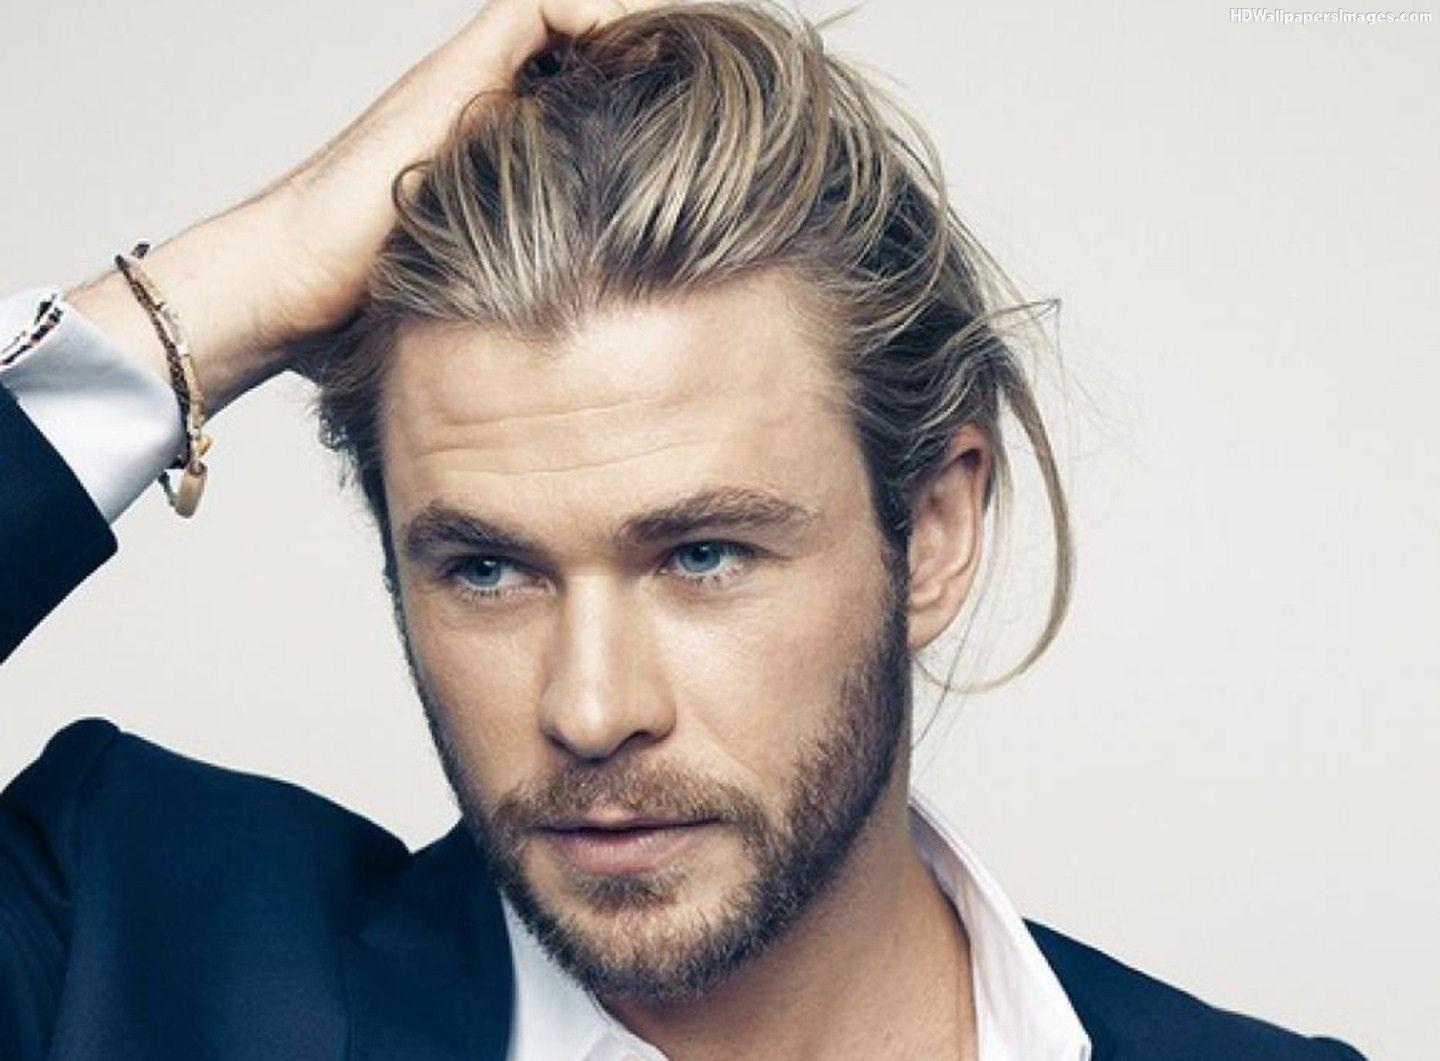 Mobile Compatible Chris Hemsworth Wallpapers, Chris Hemsworth Free